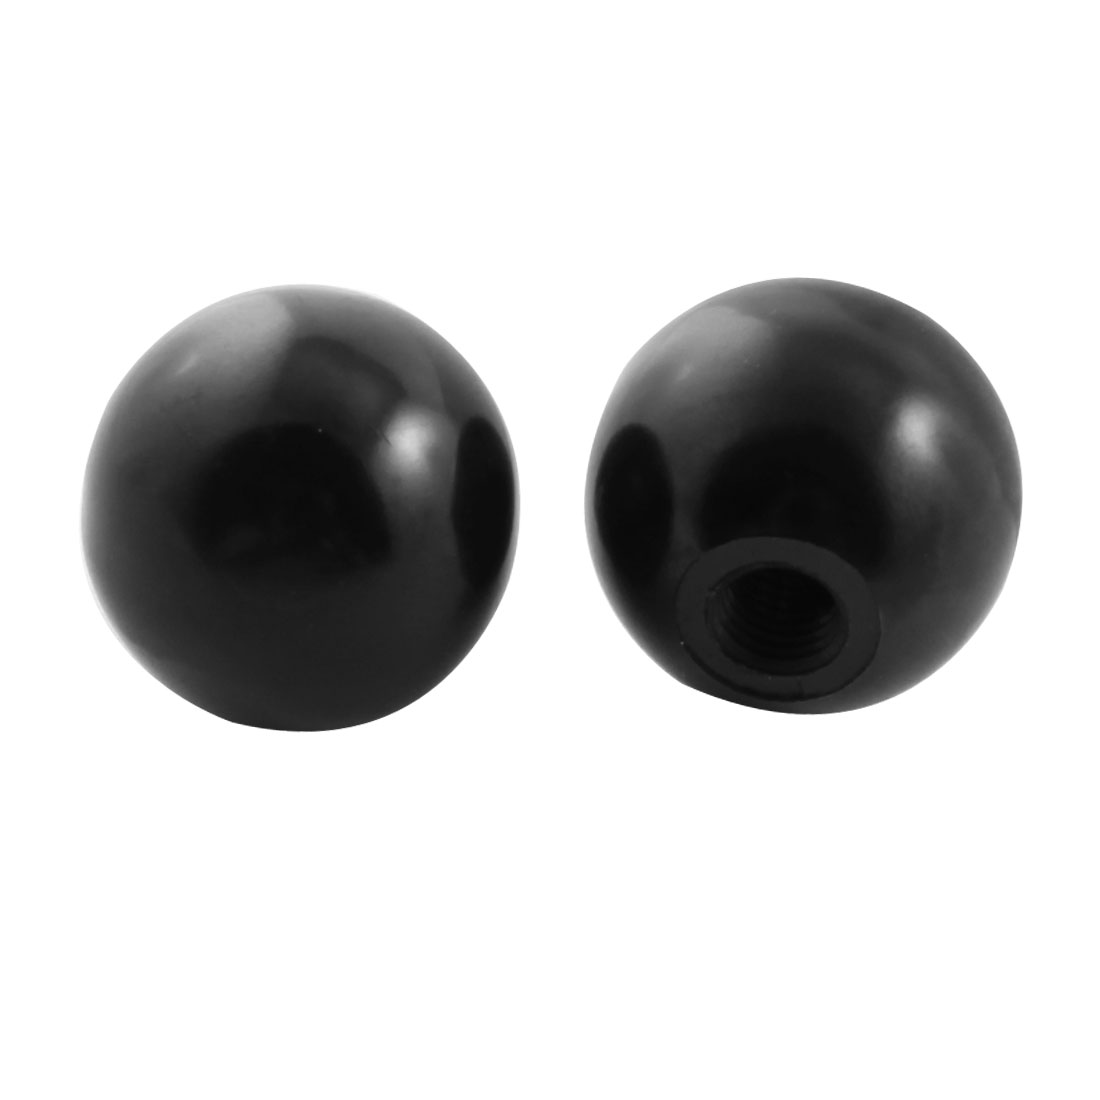 2pcs 35mm Dia Plastic Ball M10 Threaded Blind Hole Handling Knob Black